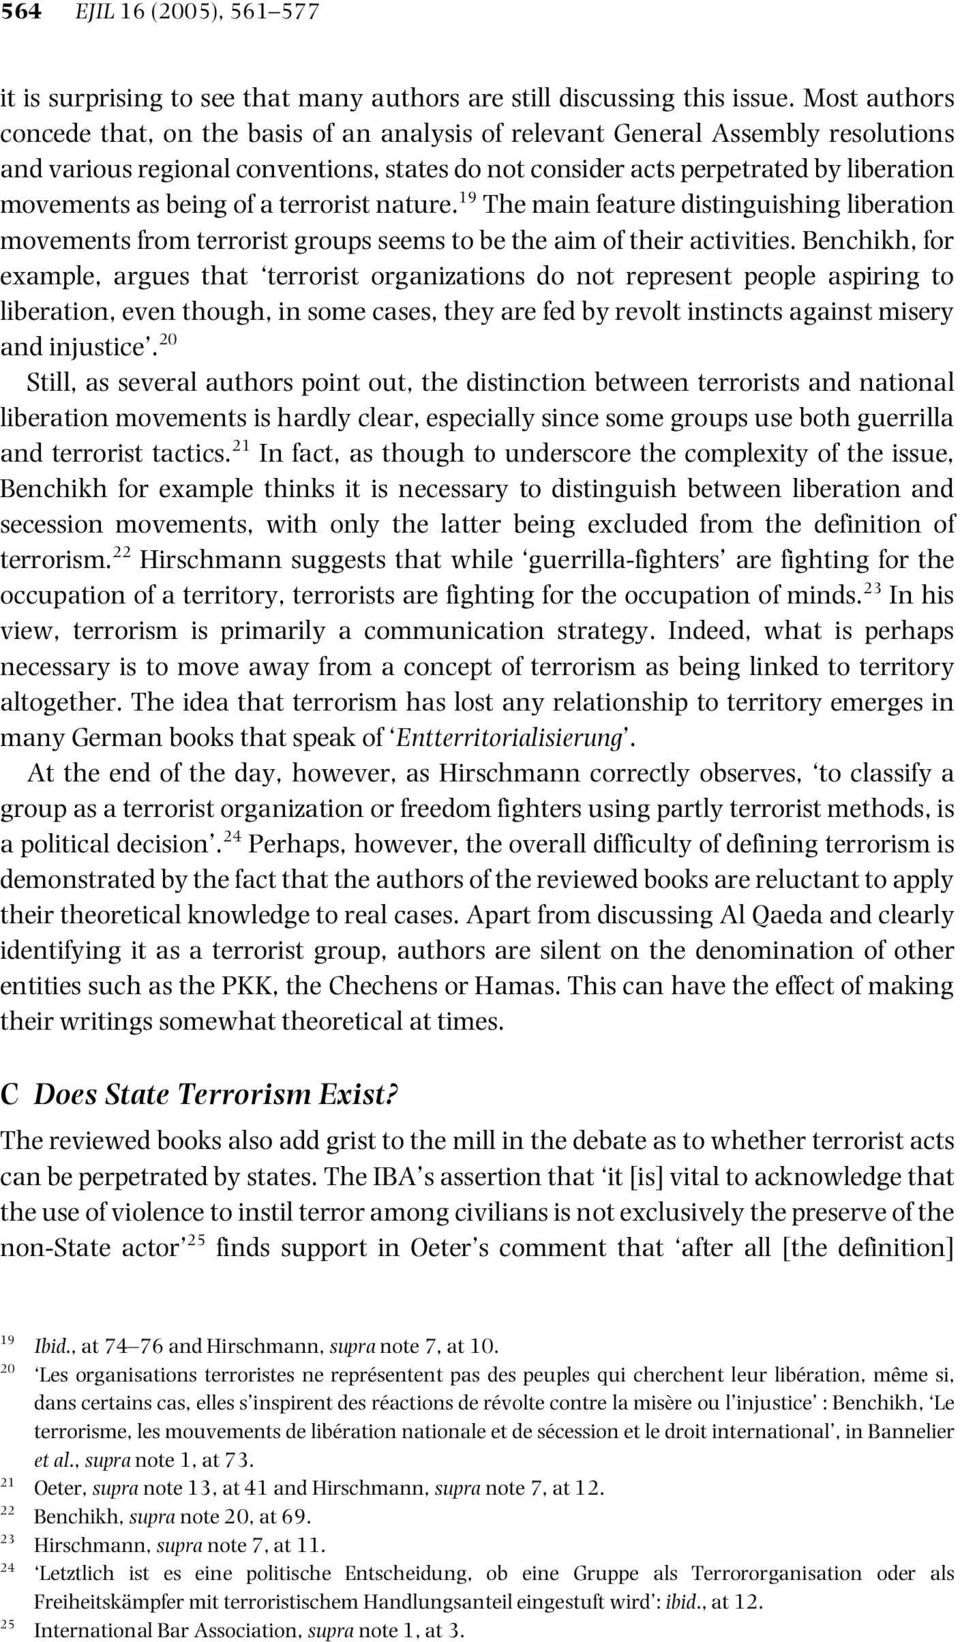 being of a terrorist nature. 19 The main feature distinguishing liberation movements from terrorist groups seems to be the aim of their activities.